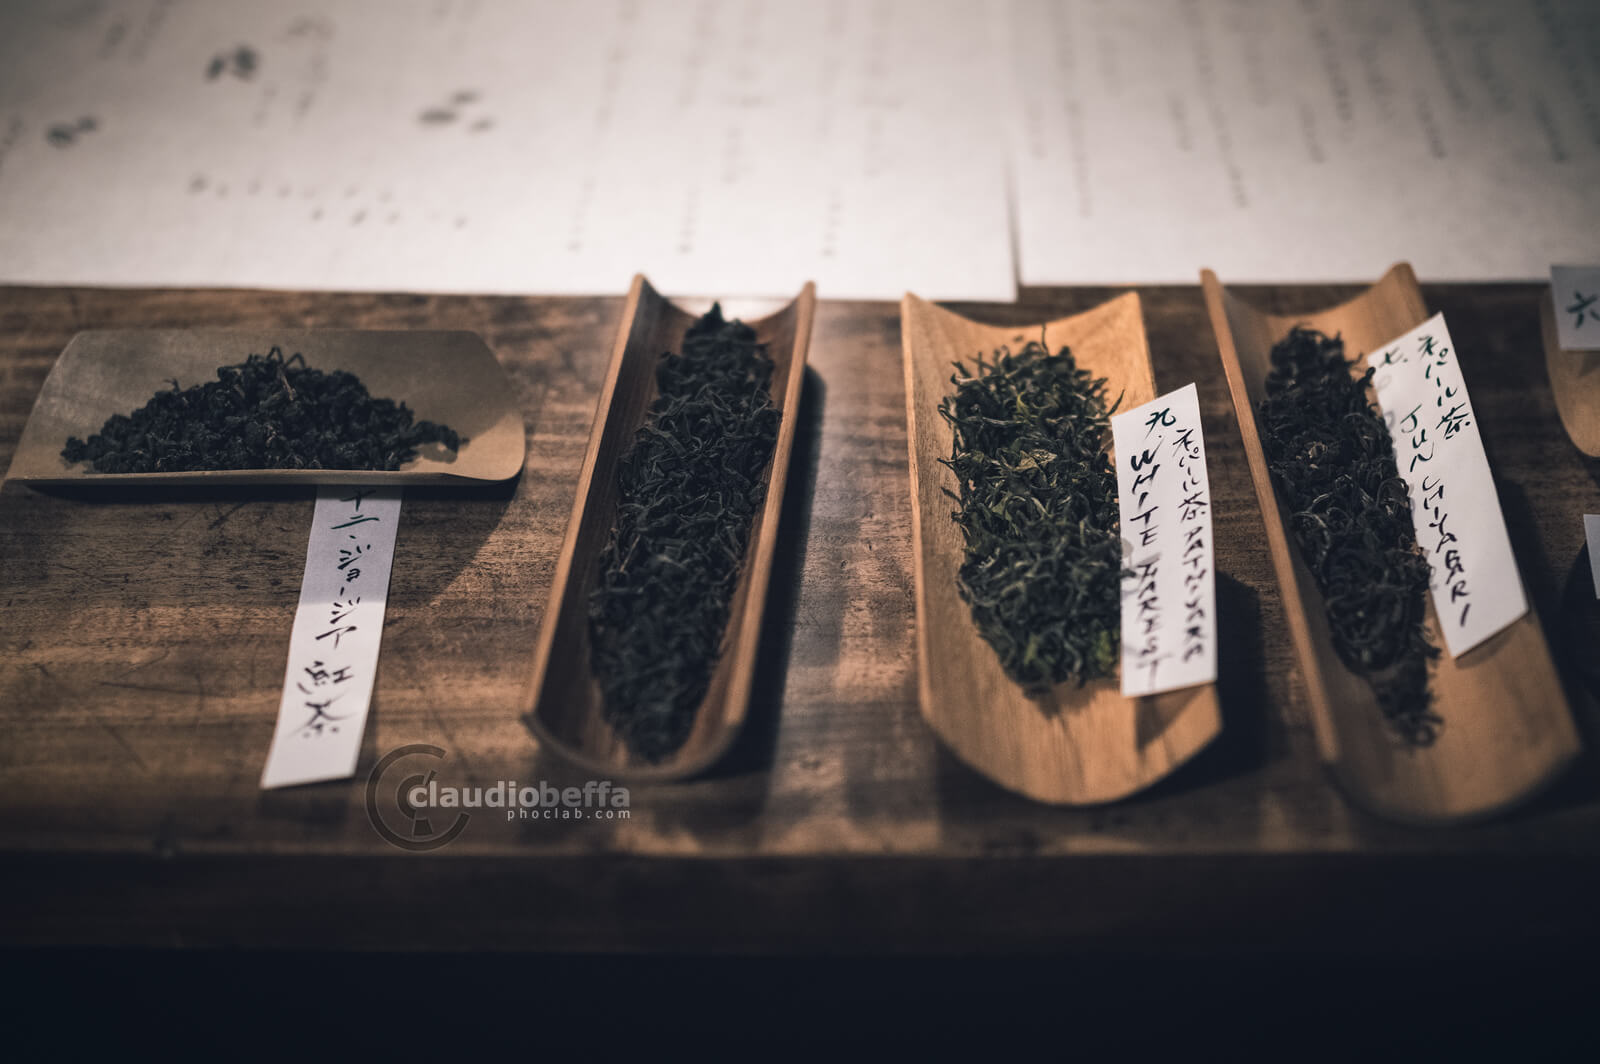 Selection of high grade teas from different countries, Japan, Tradition, Travel.